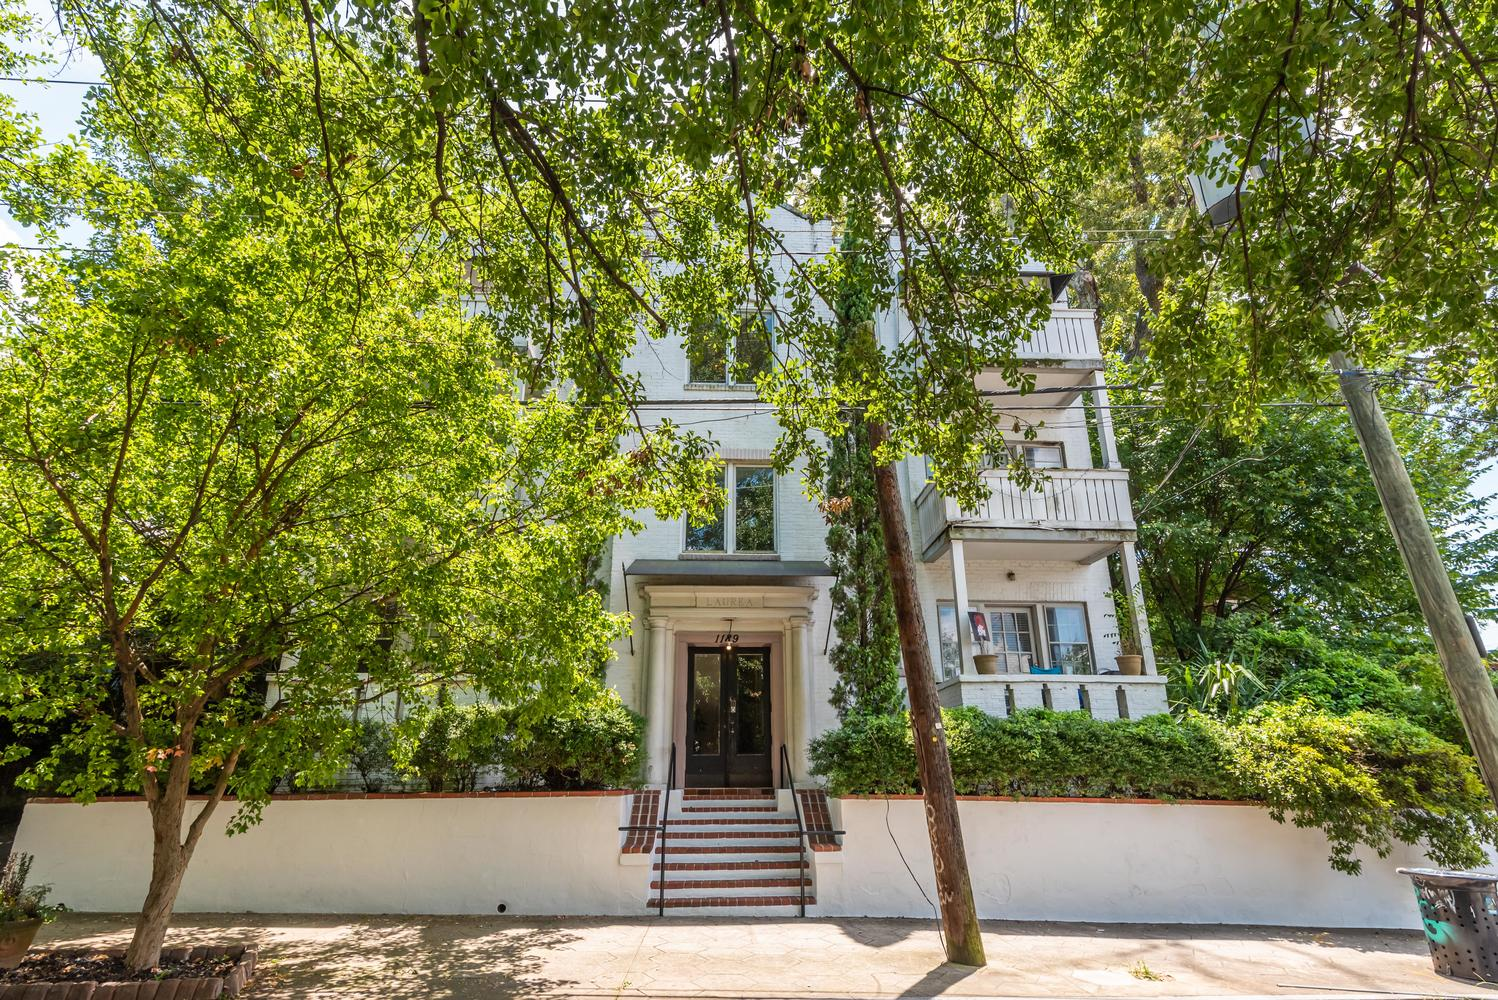 1189 Mclendon Ave NE #11 Atlanta GA 30307 – SOLD – $195,000